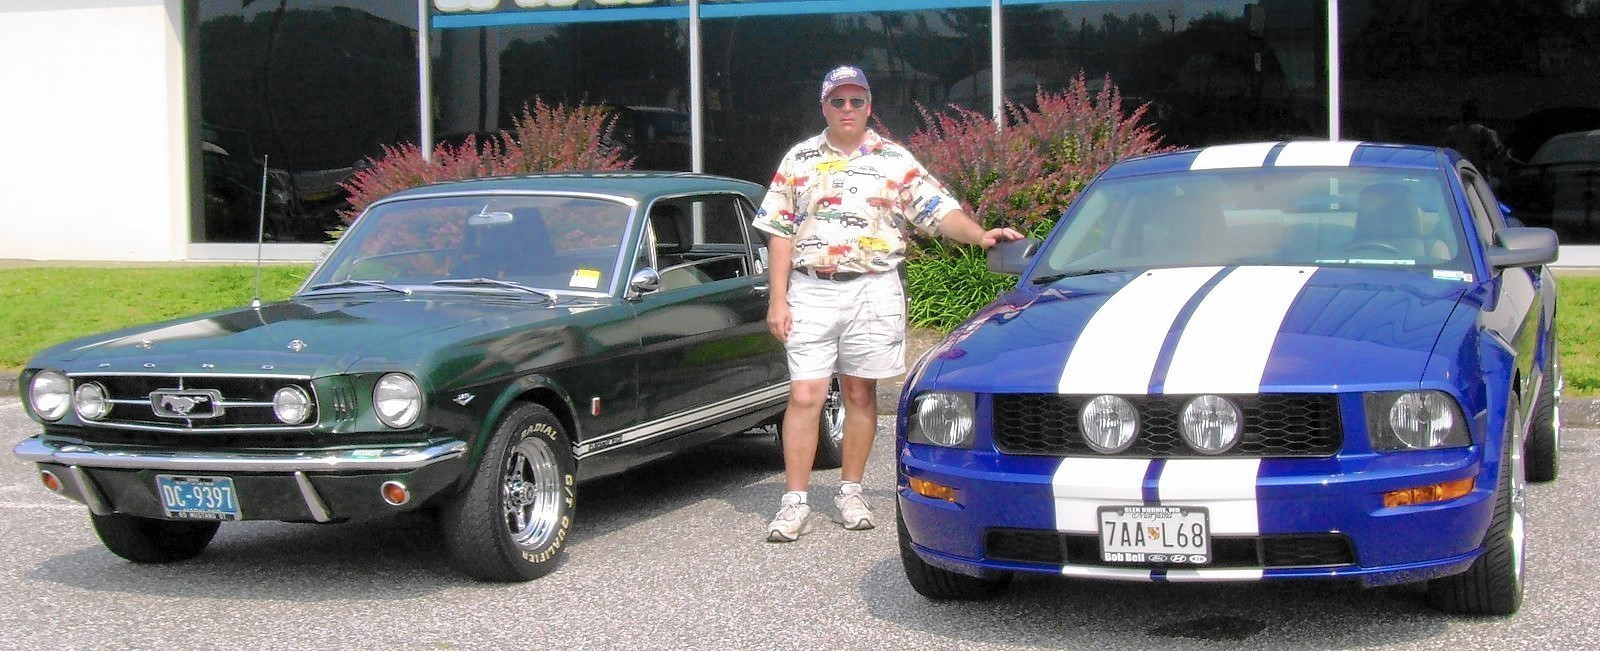 Glen Burnie East: Fords Set To Flaunt At Annual Car Show